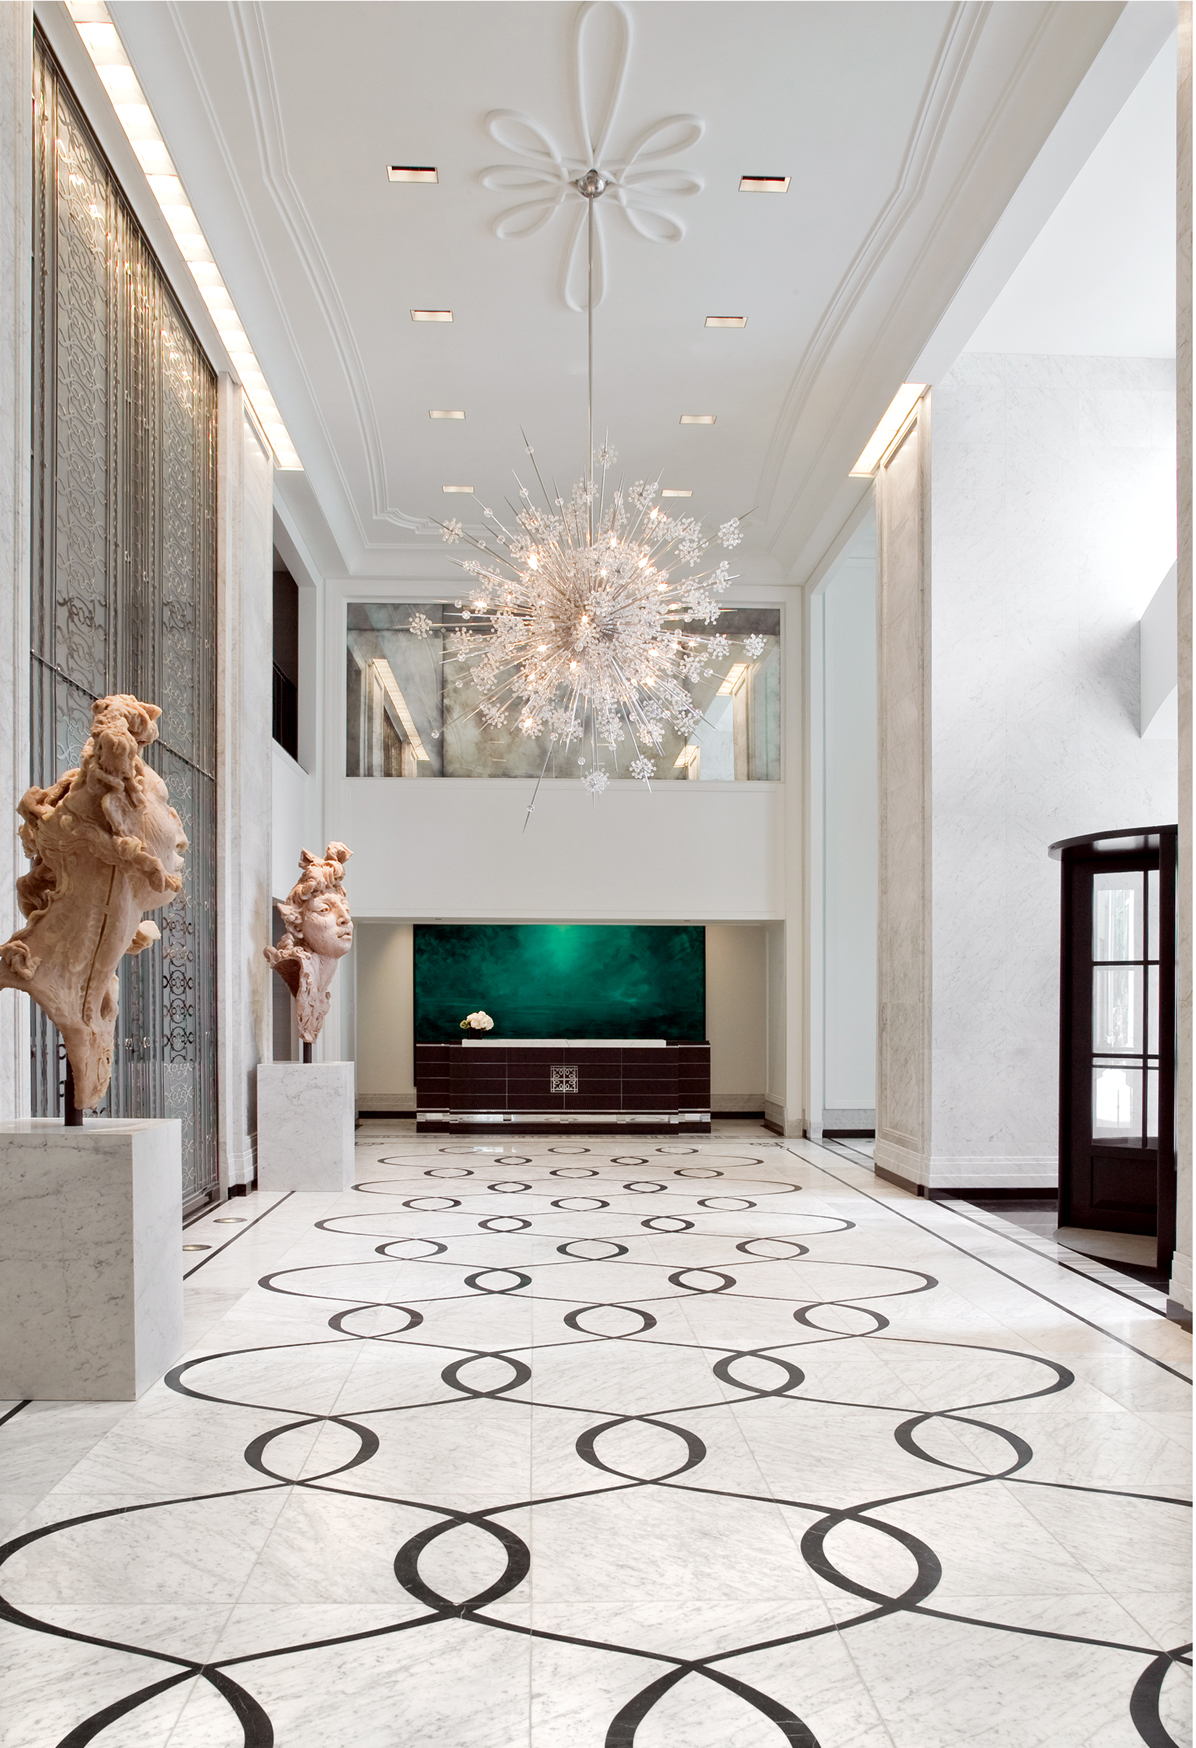 Elysian Hotel, currently Waldorf Astoria | Design Firm: Simeone Deary Design Group Artists L to R: Javier Marín, Herbert Brandl